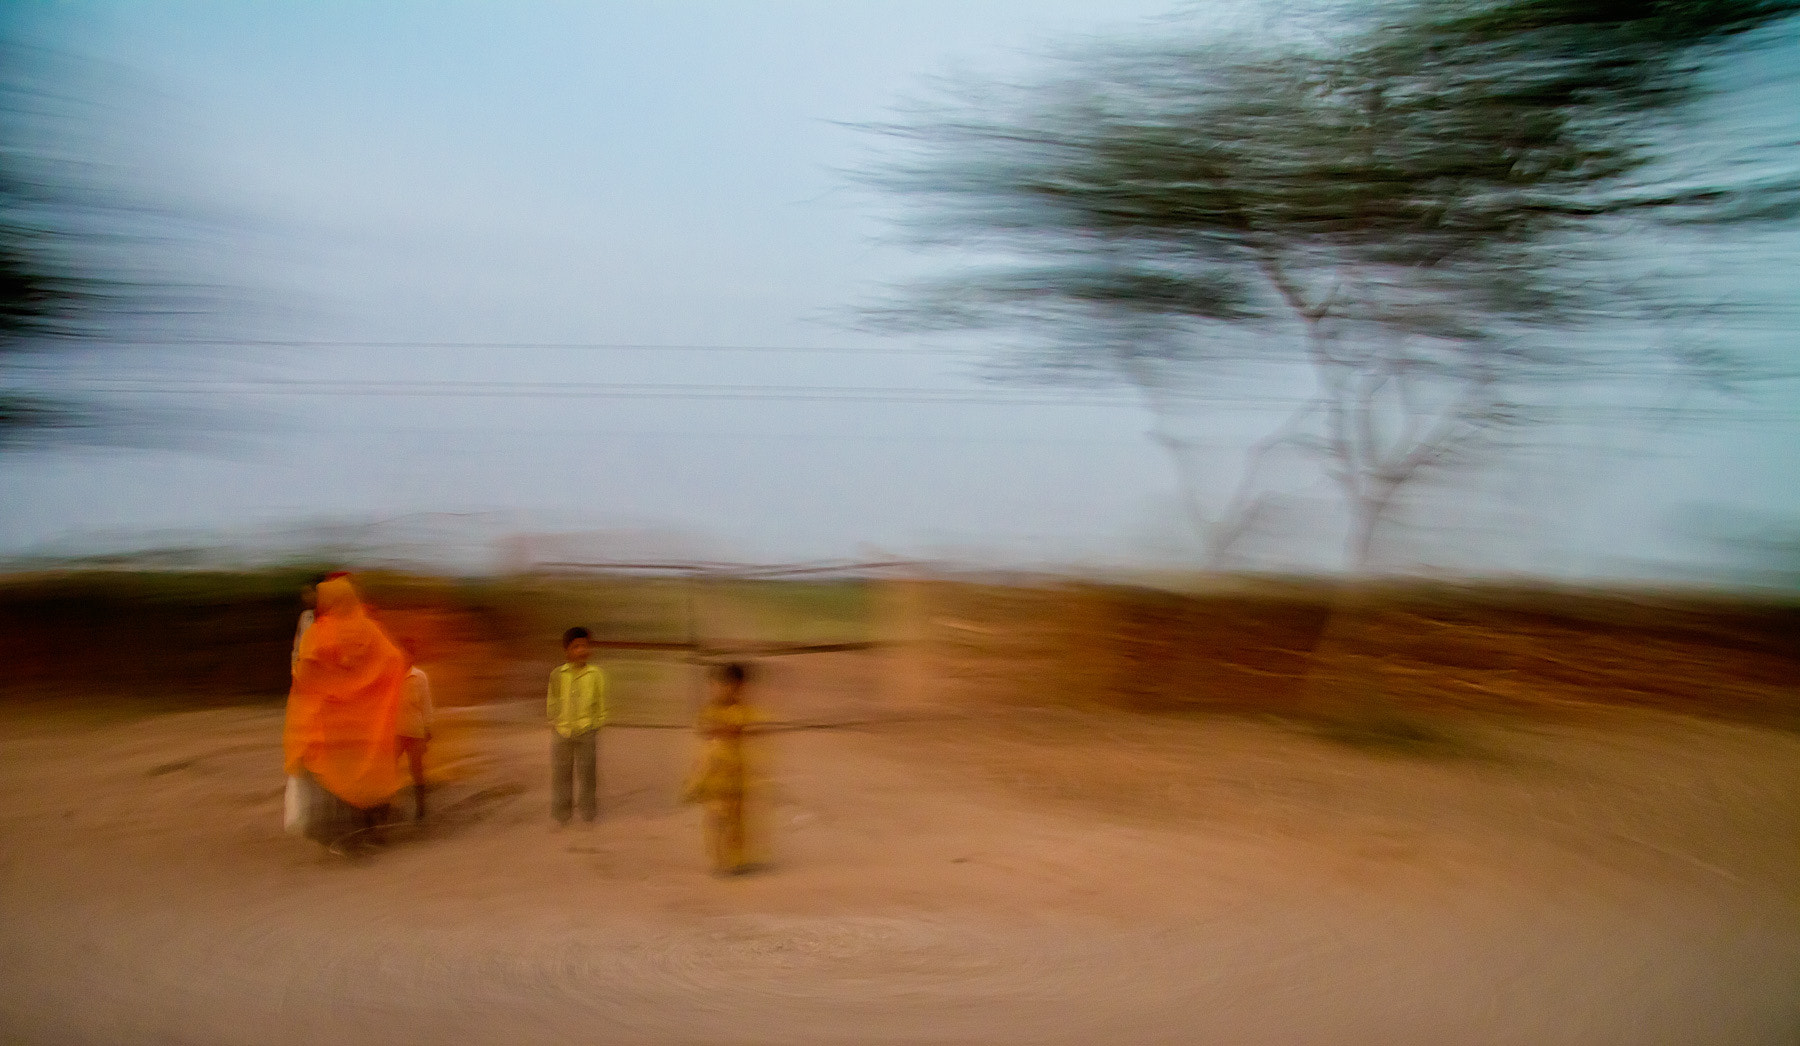 Photograph Family - Rural Rajastan - India by Sandy Gennrich on 500px